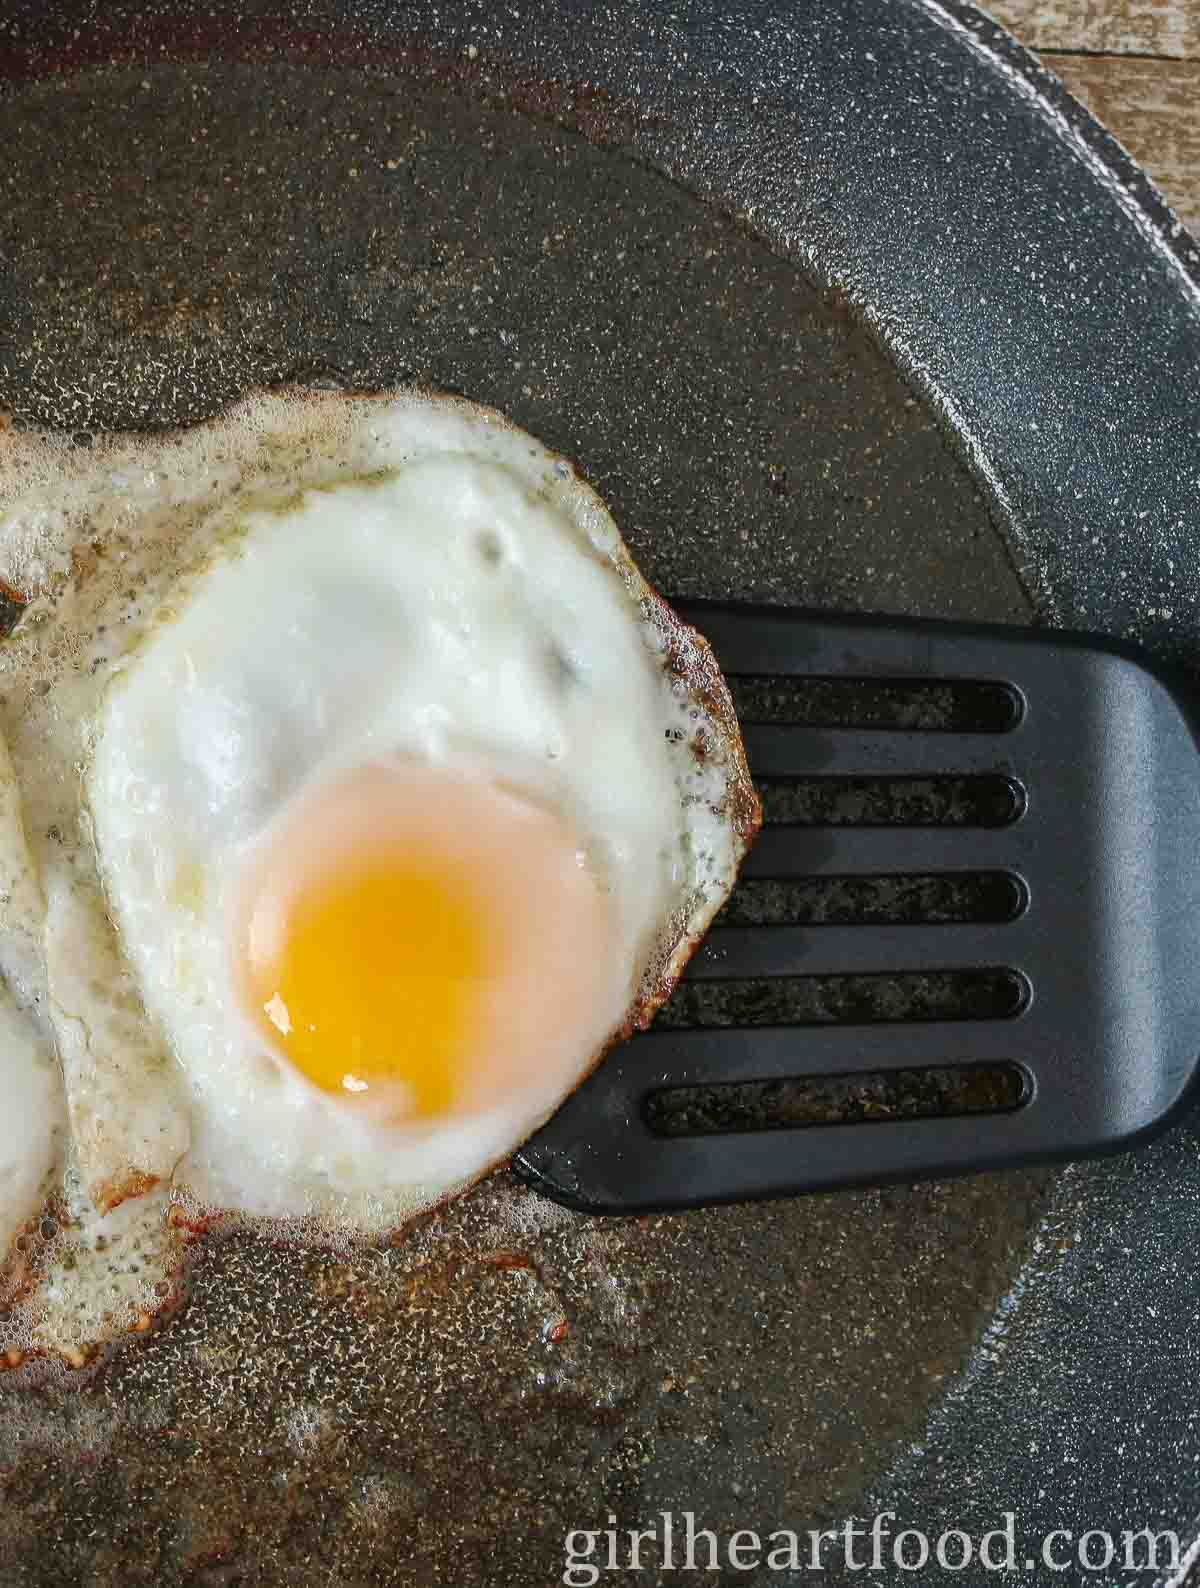 Fried egg in a non-stick pan with a spatula underneath the egg.